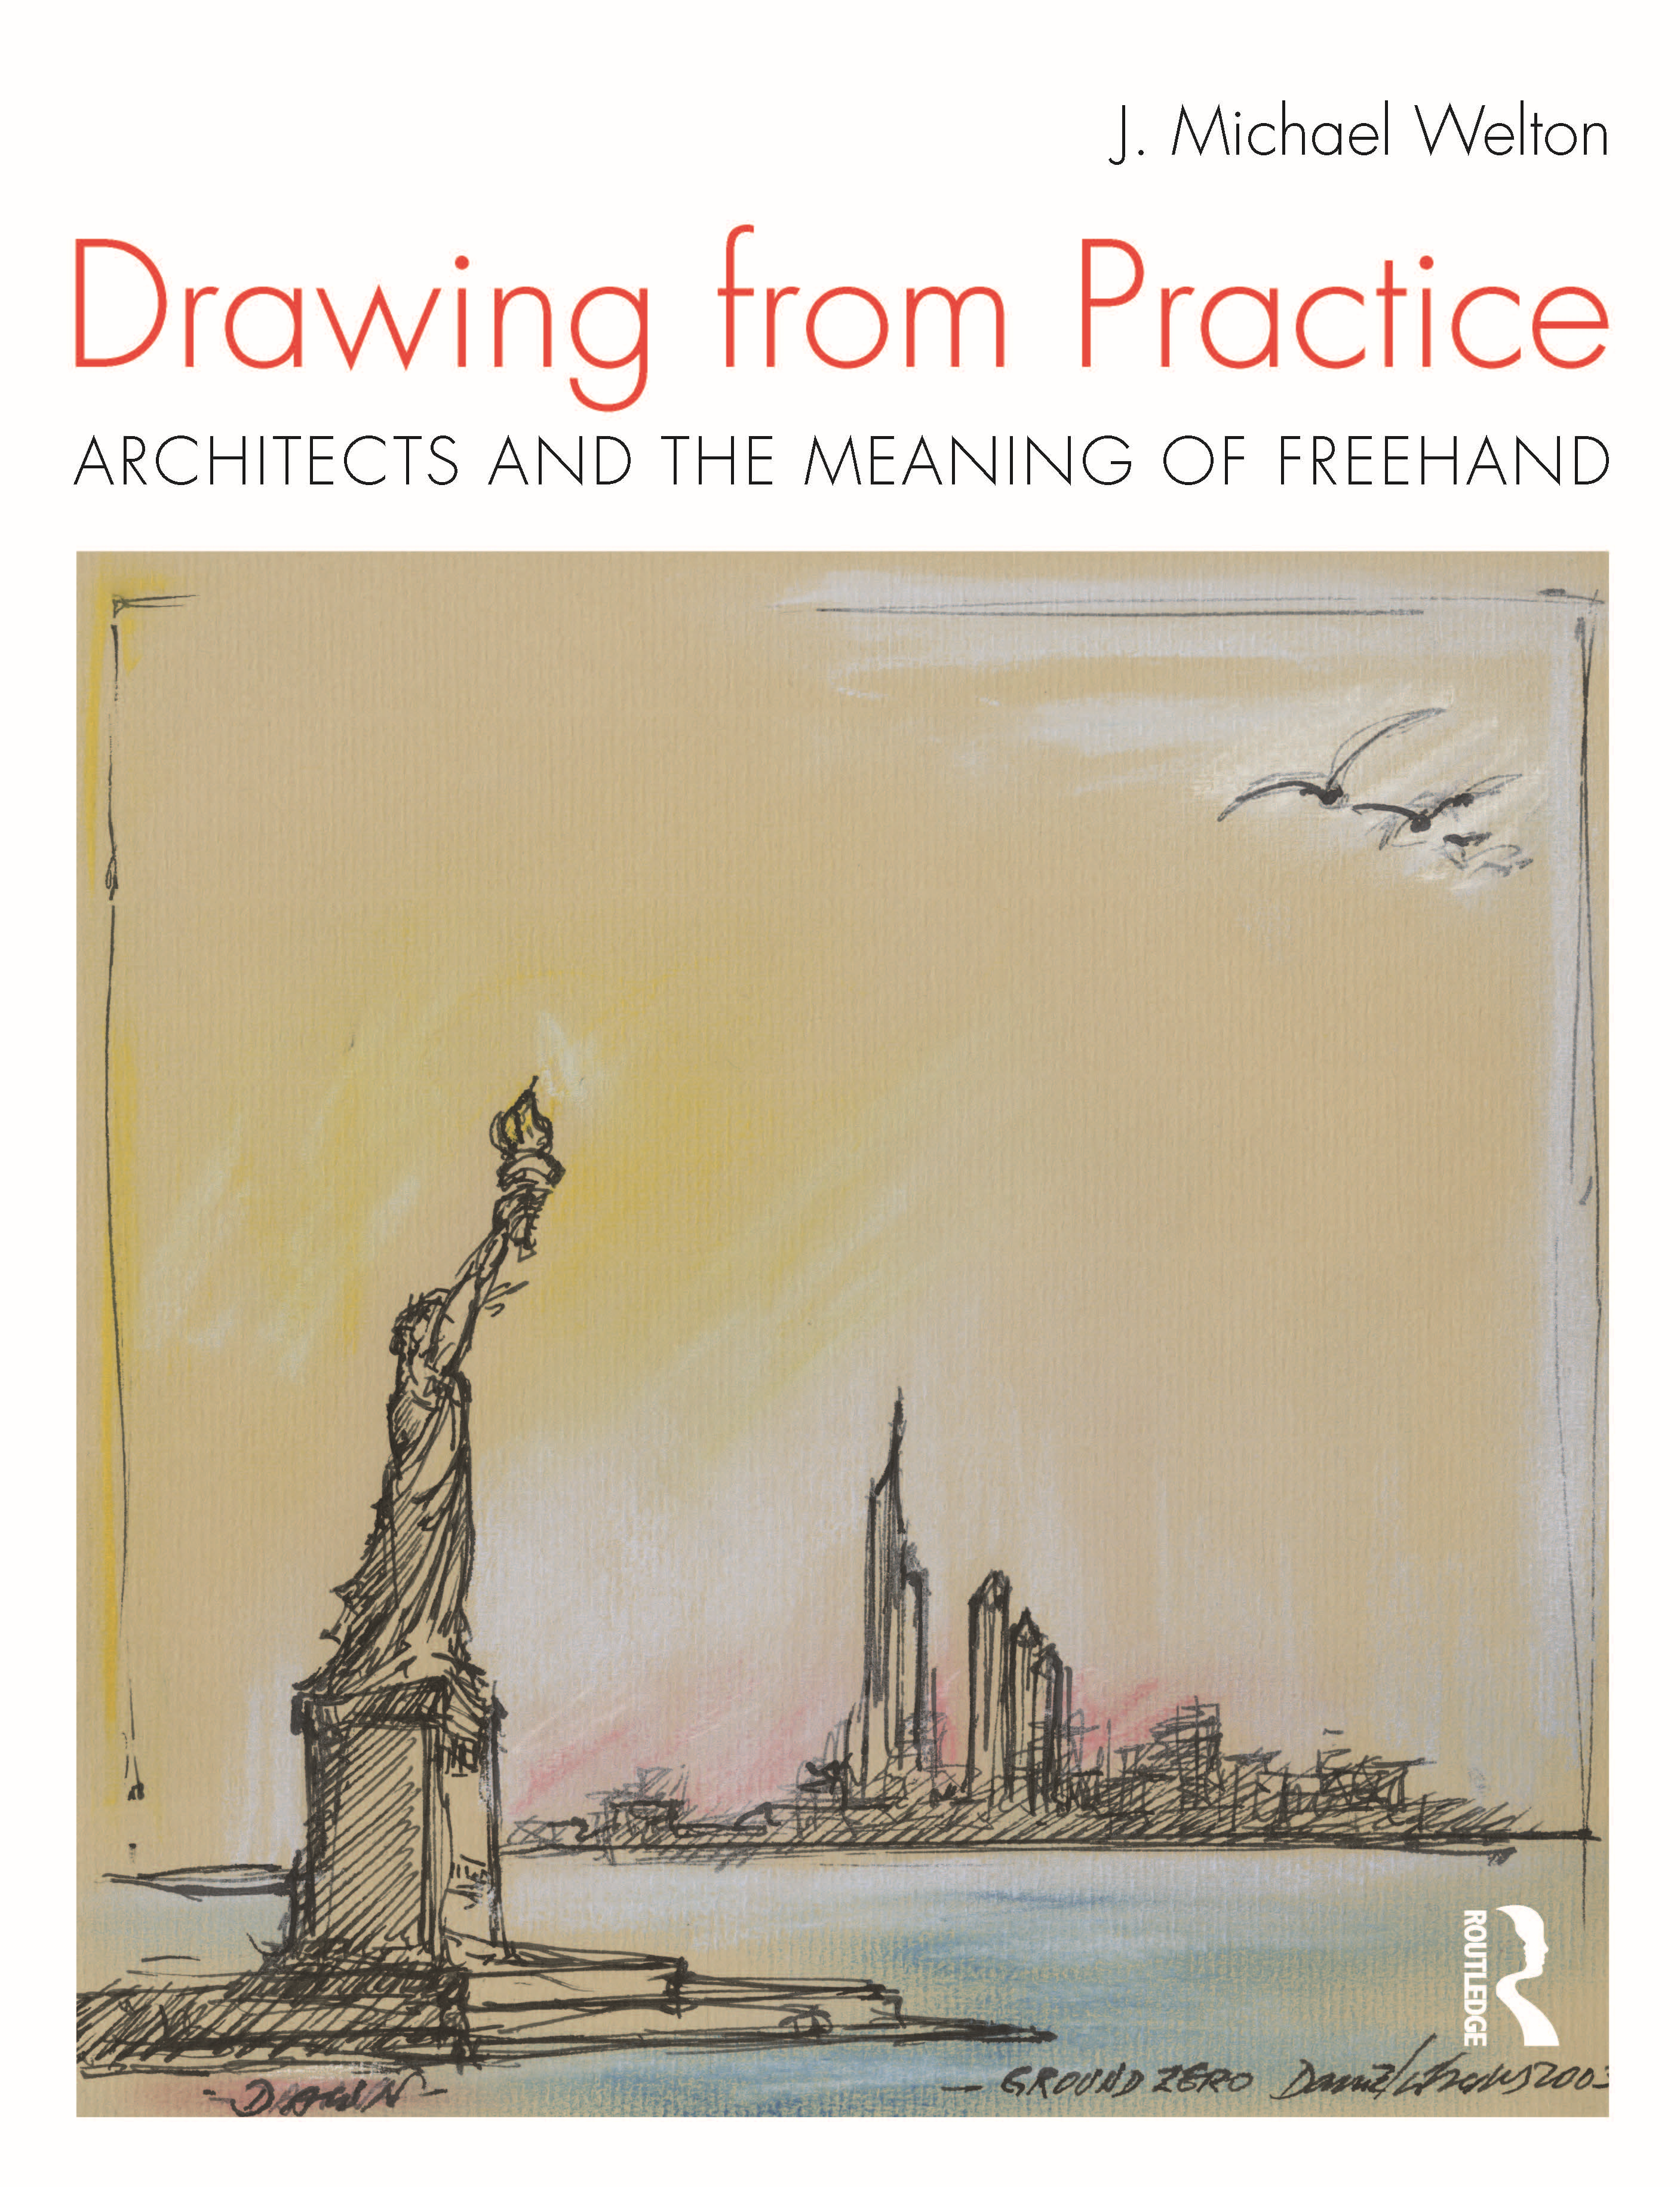 Cover, Drawing from Practice, J. Michael Welton